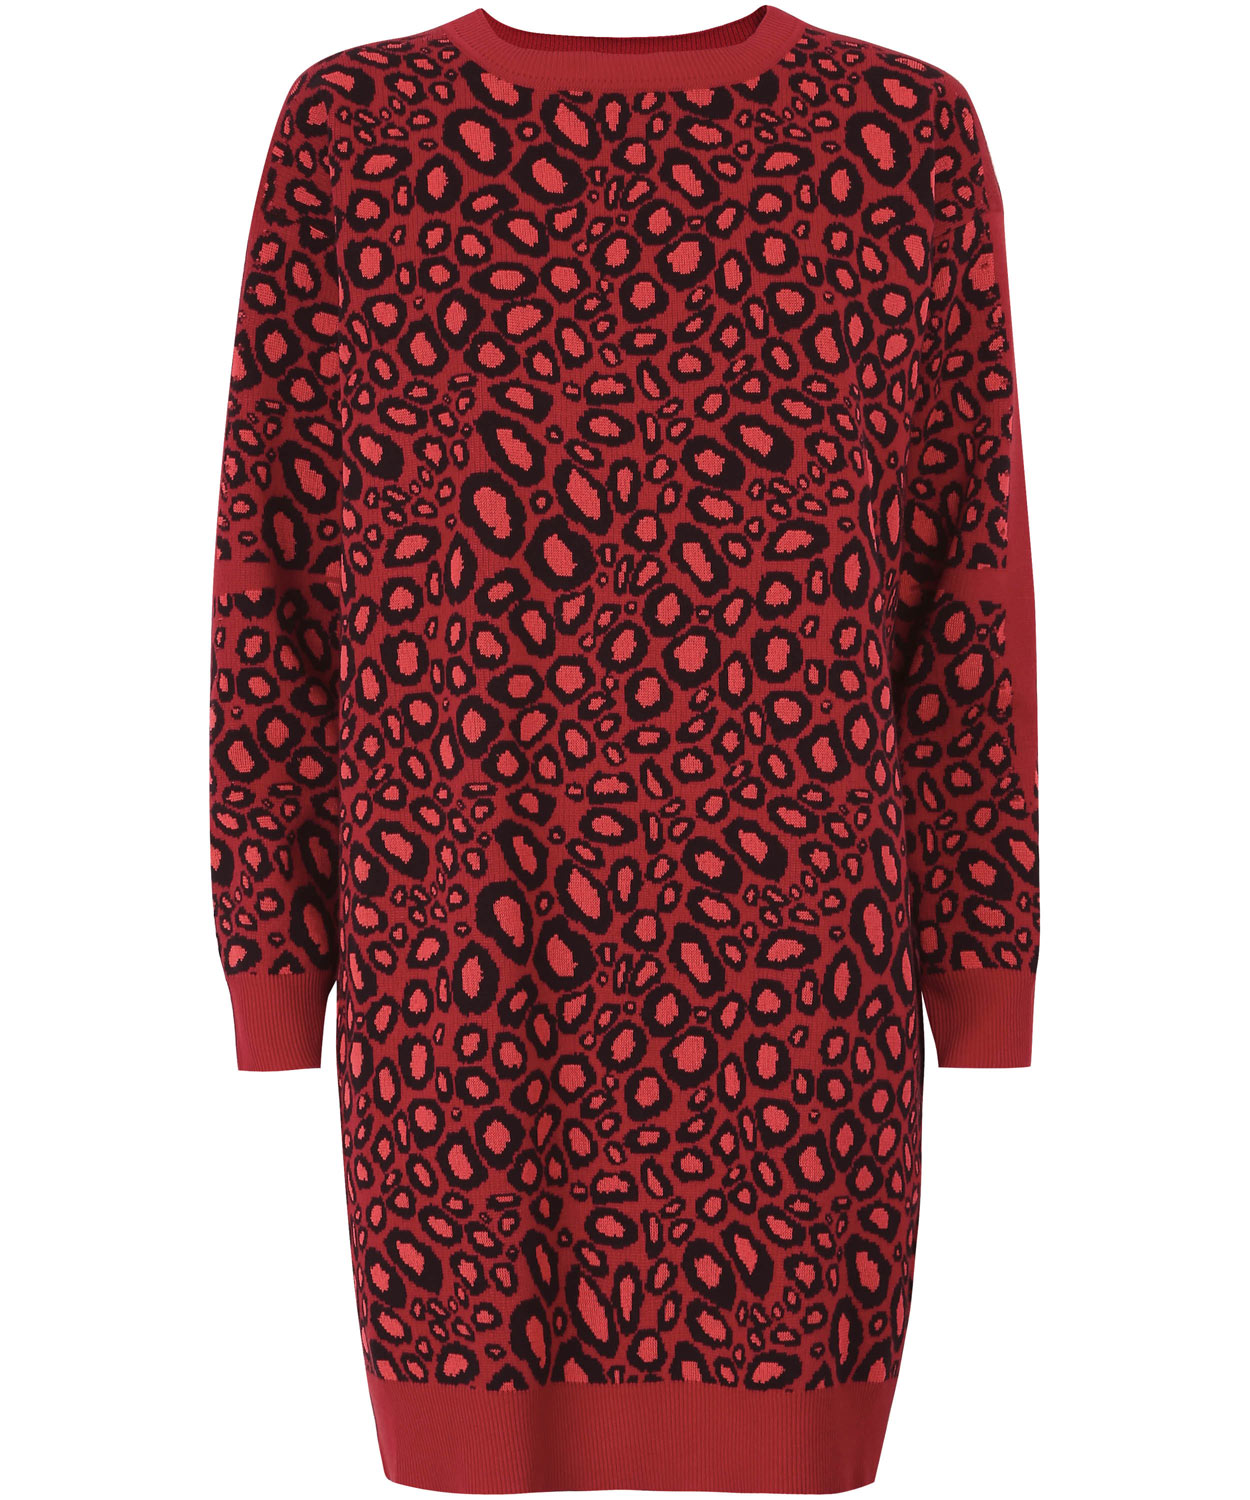 Kenzo Red Leopard Print Knitted Dress in Red - Lyst